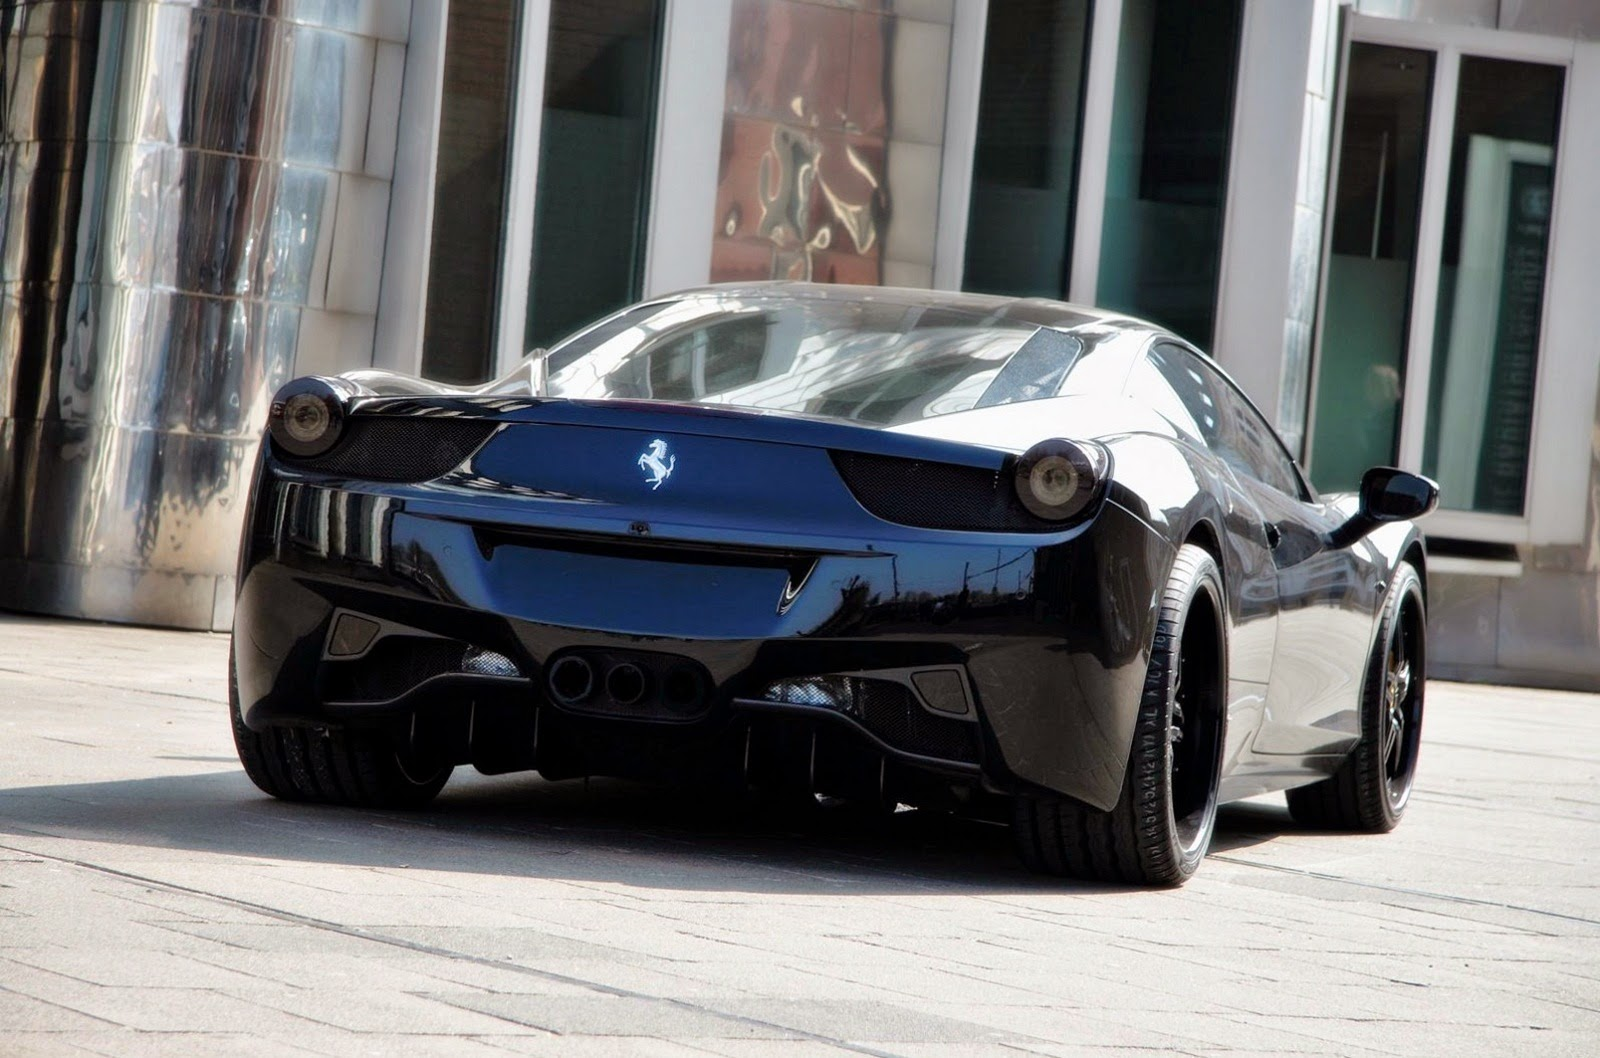 Ferrari 458 Balck Car Wallpapers,Images,pics,photos